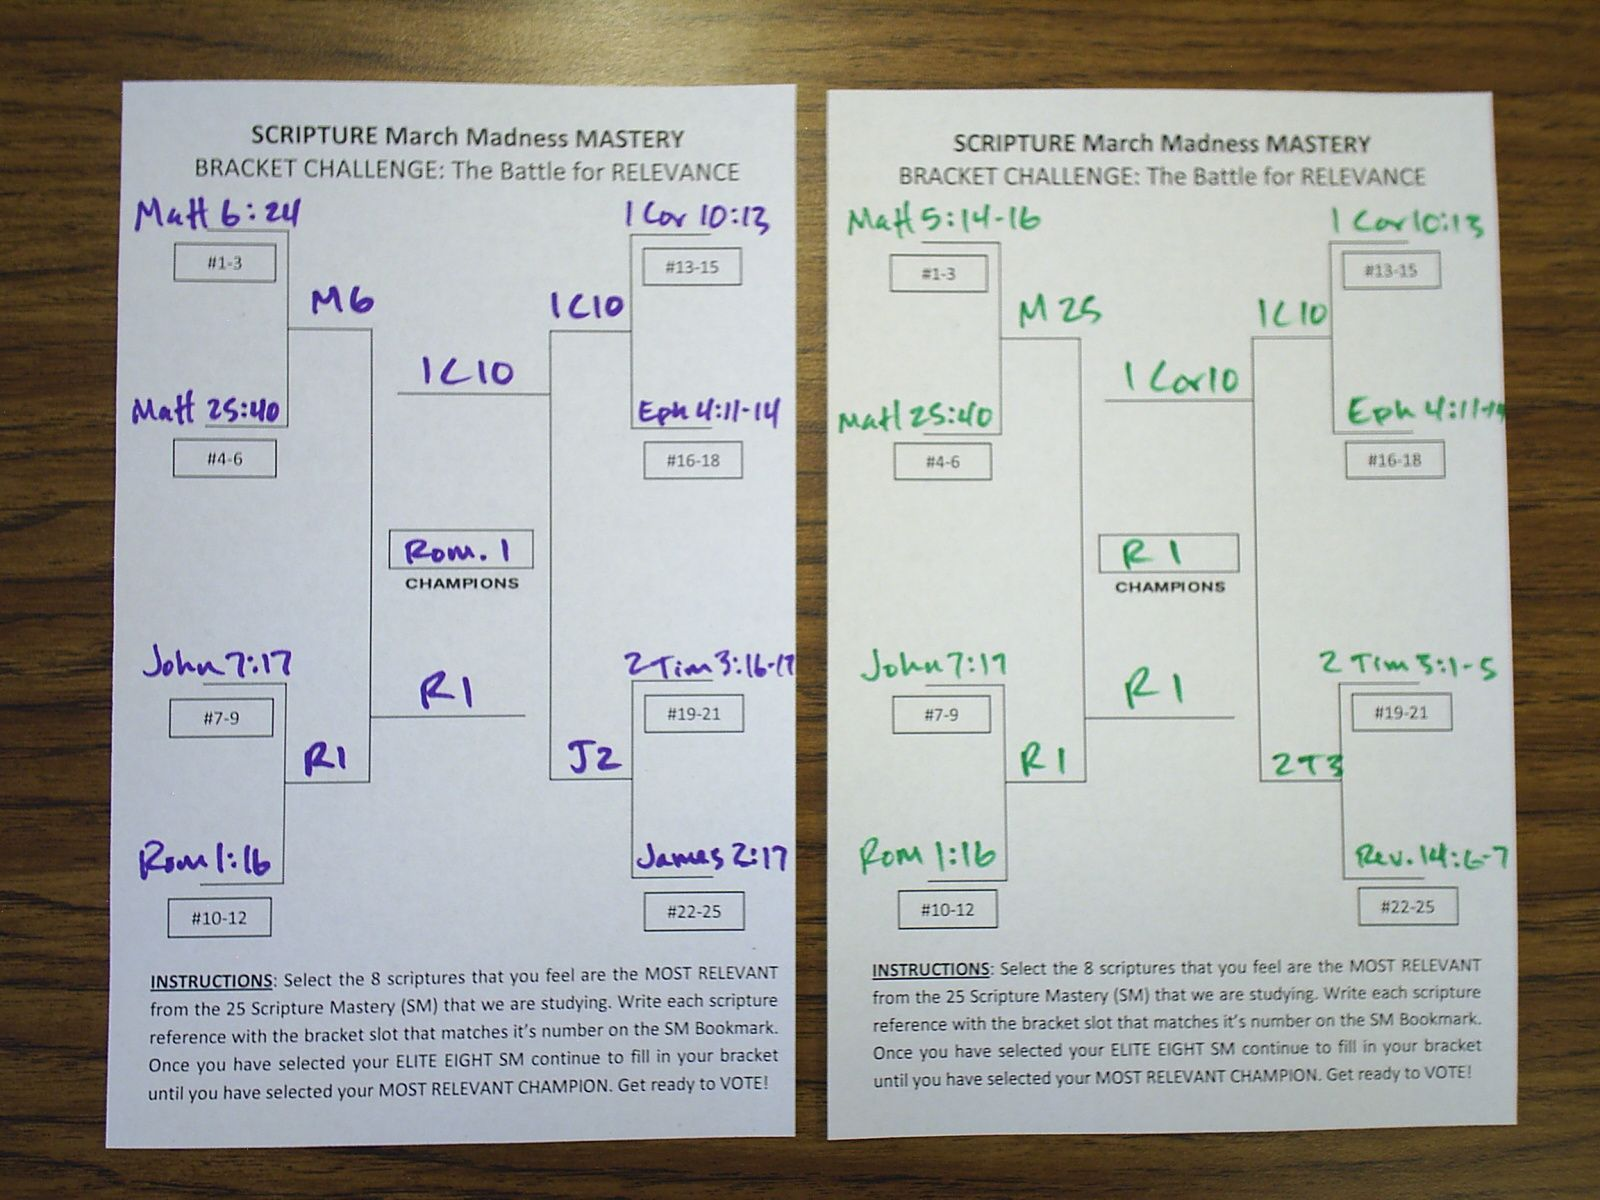 Scripture March Madness Mastery Relevance Brackets